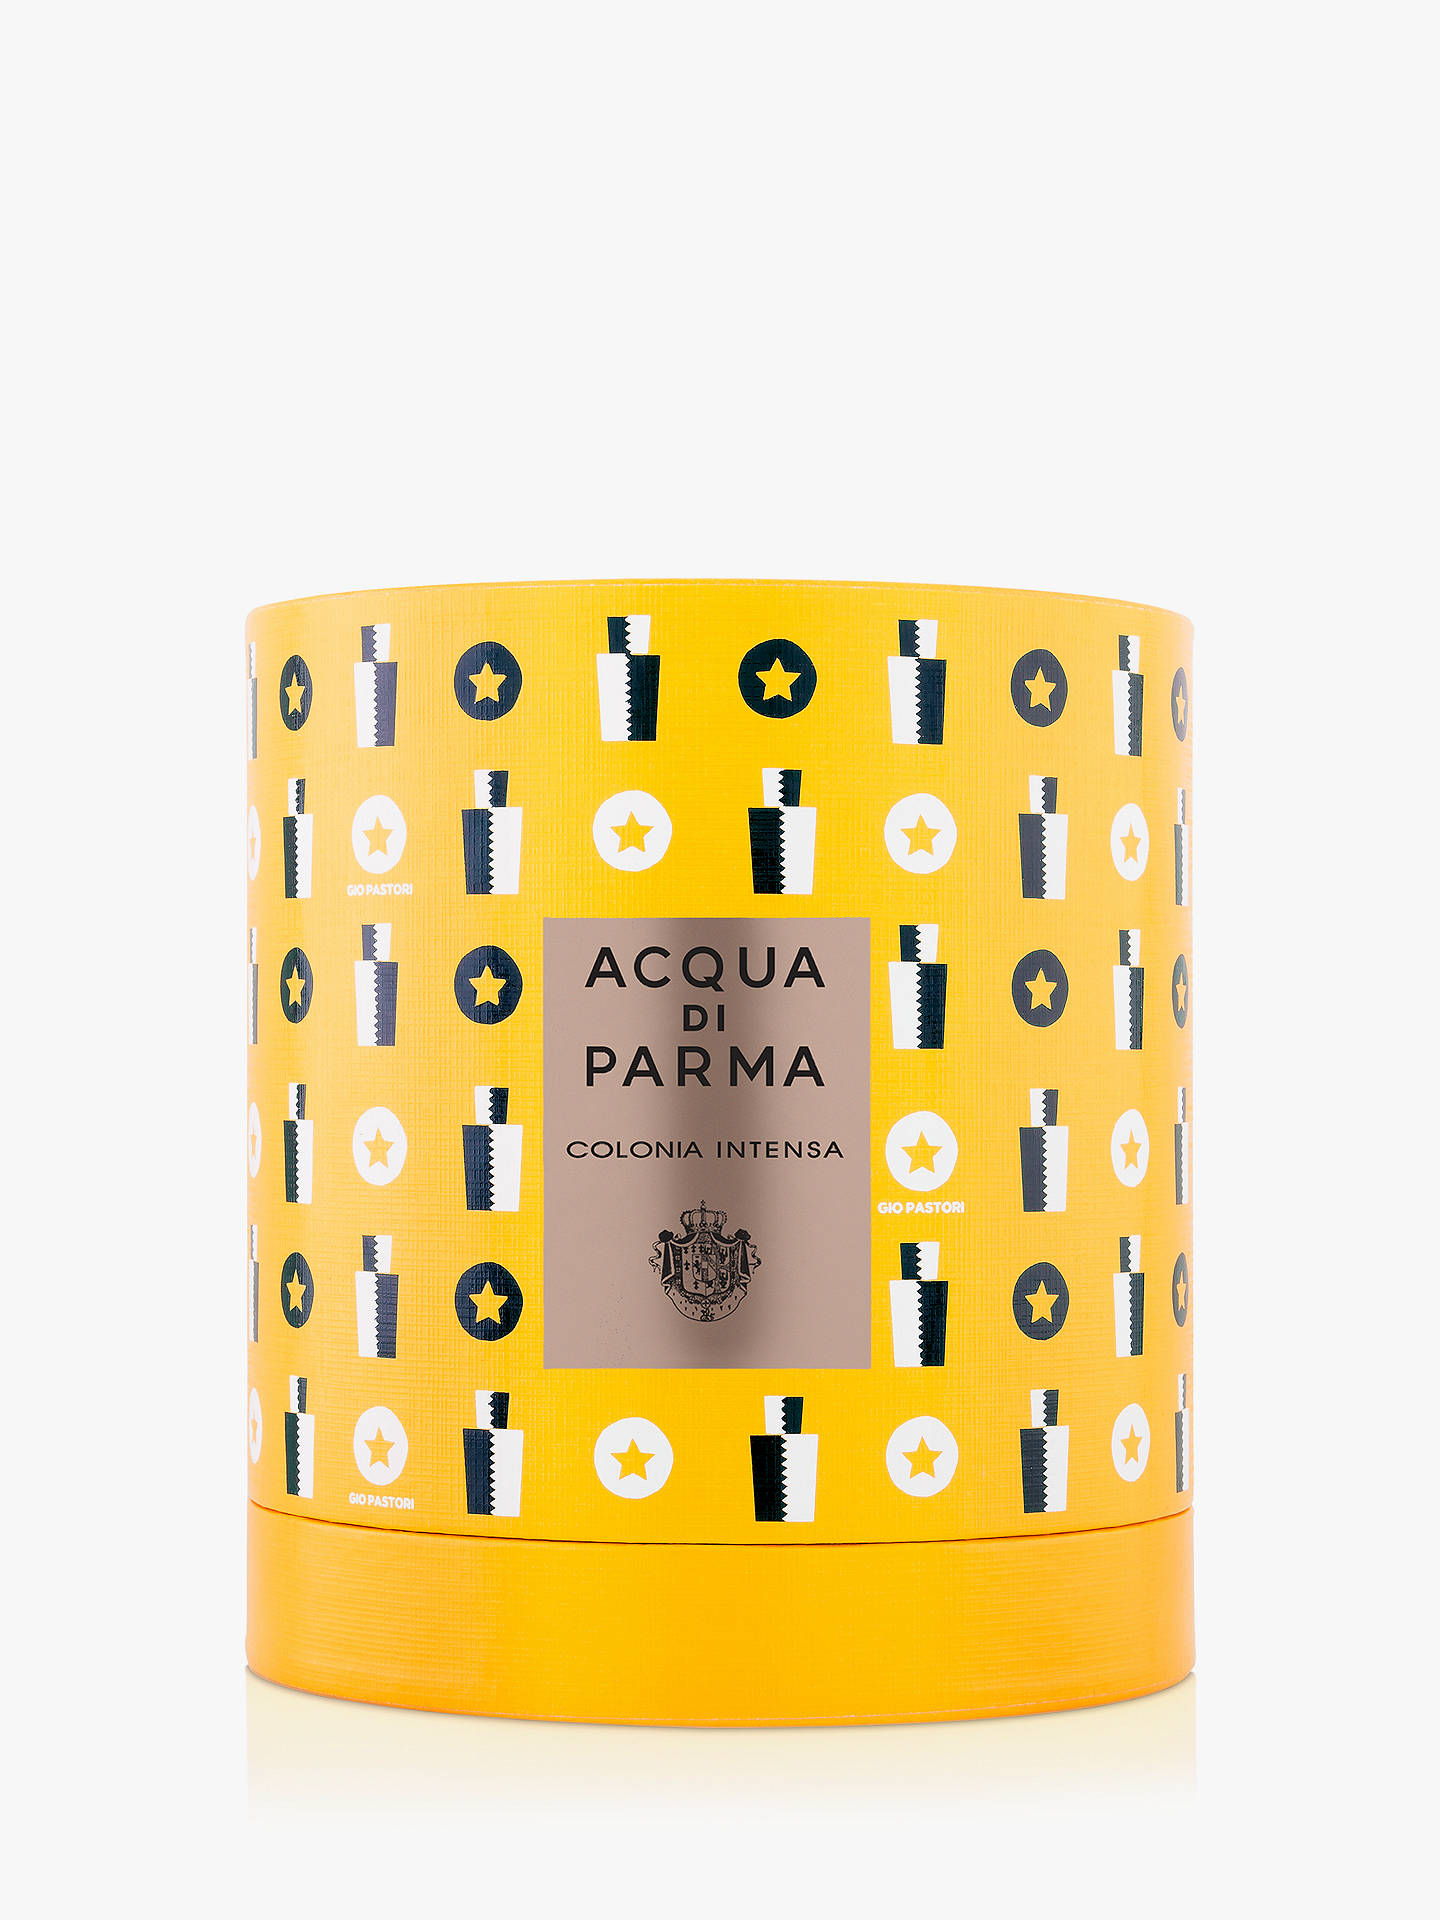 Buy Acqua di Parma Colonia Intensa Eau de Cologne 100ml Fragrance Gift Set Online at johnlewis.com